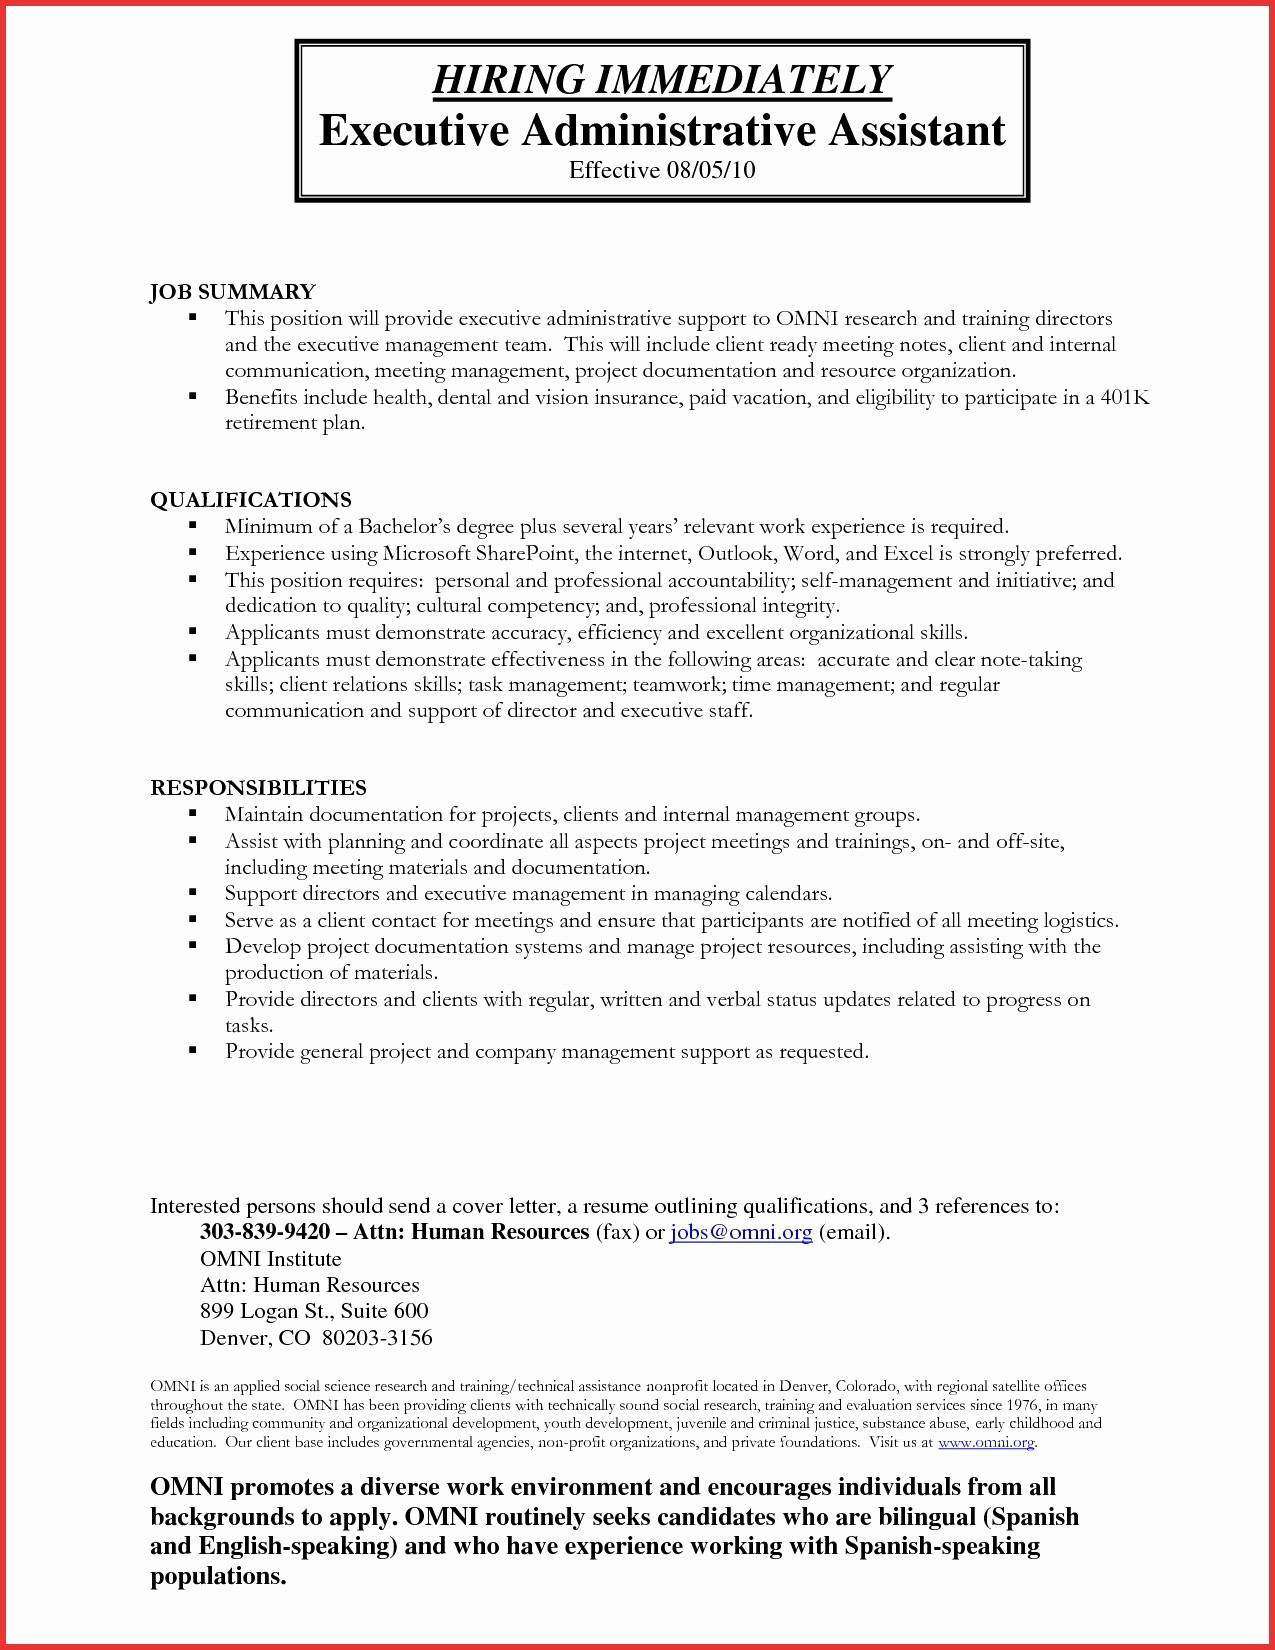 Spanish Resume Template - 30 Example Resume In English Templates Spanish Doc Free Reviews Law